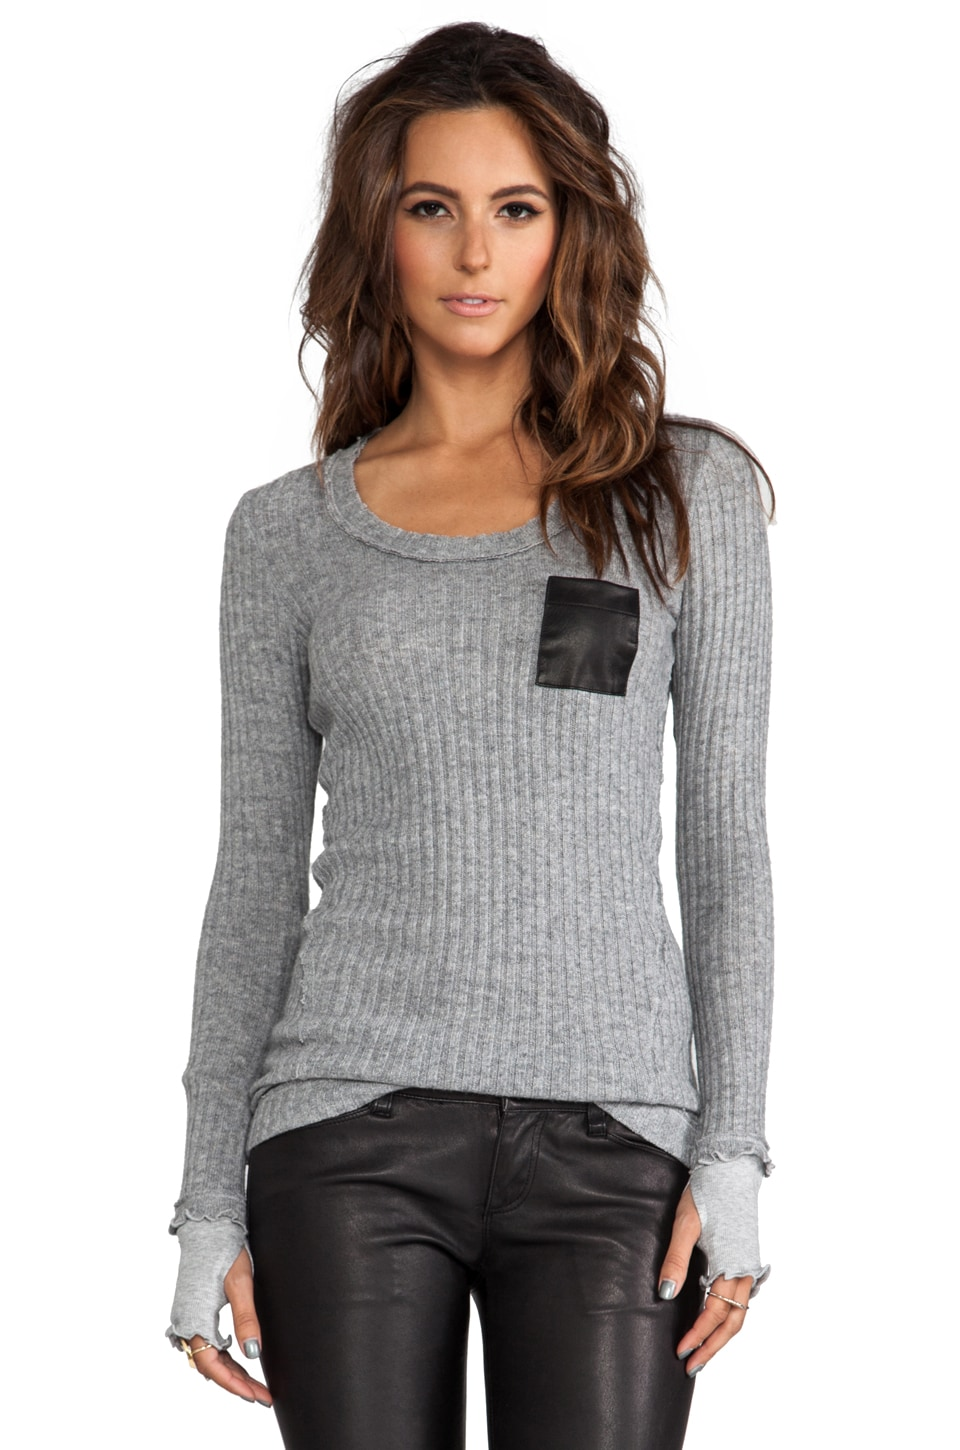 Heather Parini Pocket Sweater in Light Heather Grey